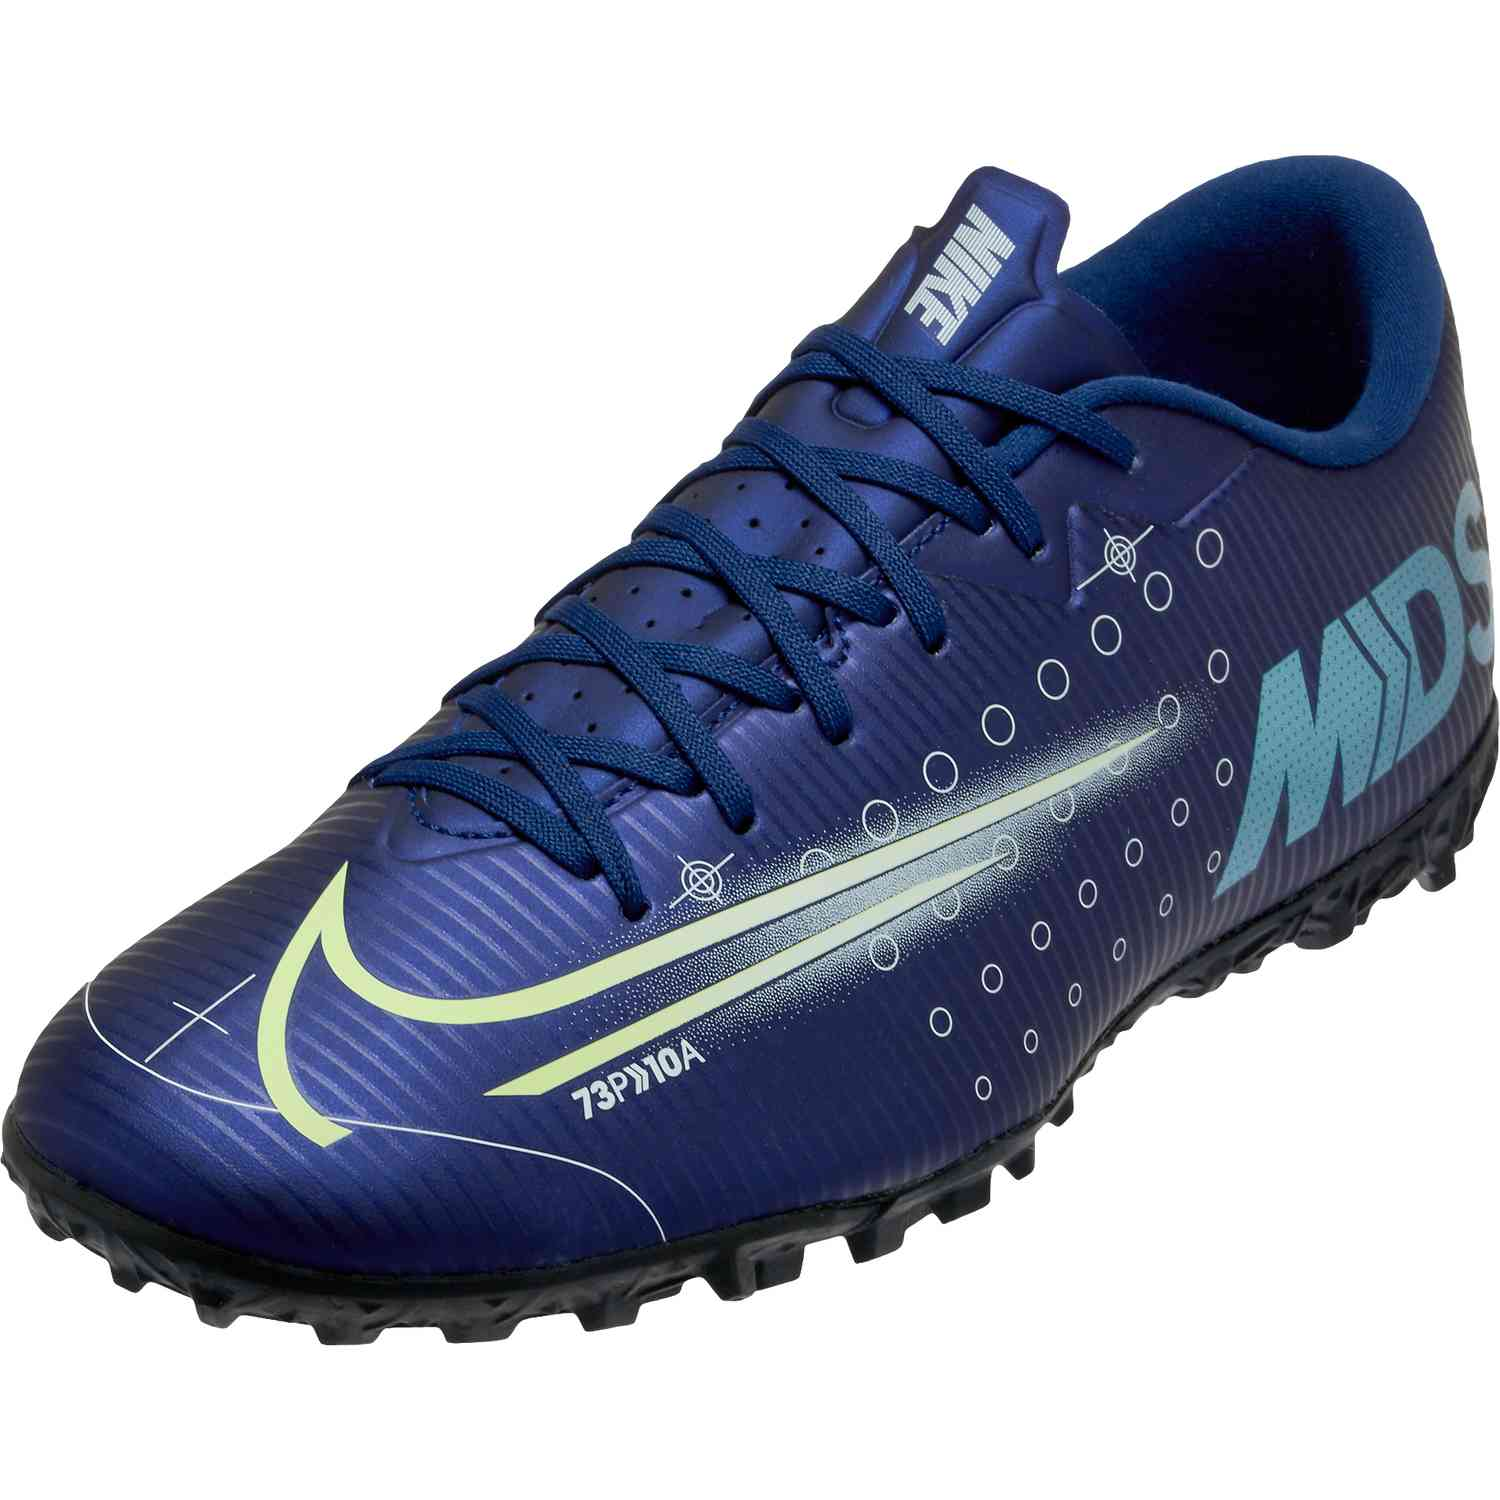 cheap for sale new high quality best authentic Nike Mercurial Vapor 13 Academy TF – Dream Speed